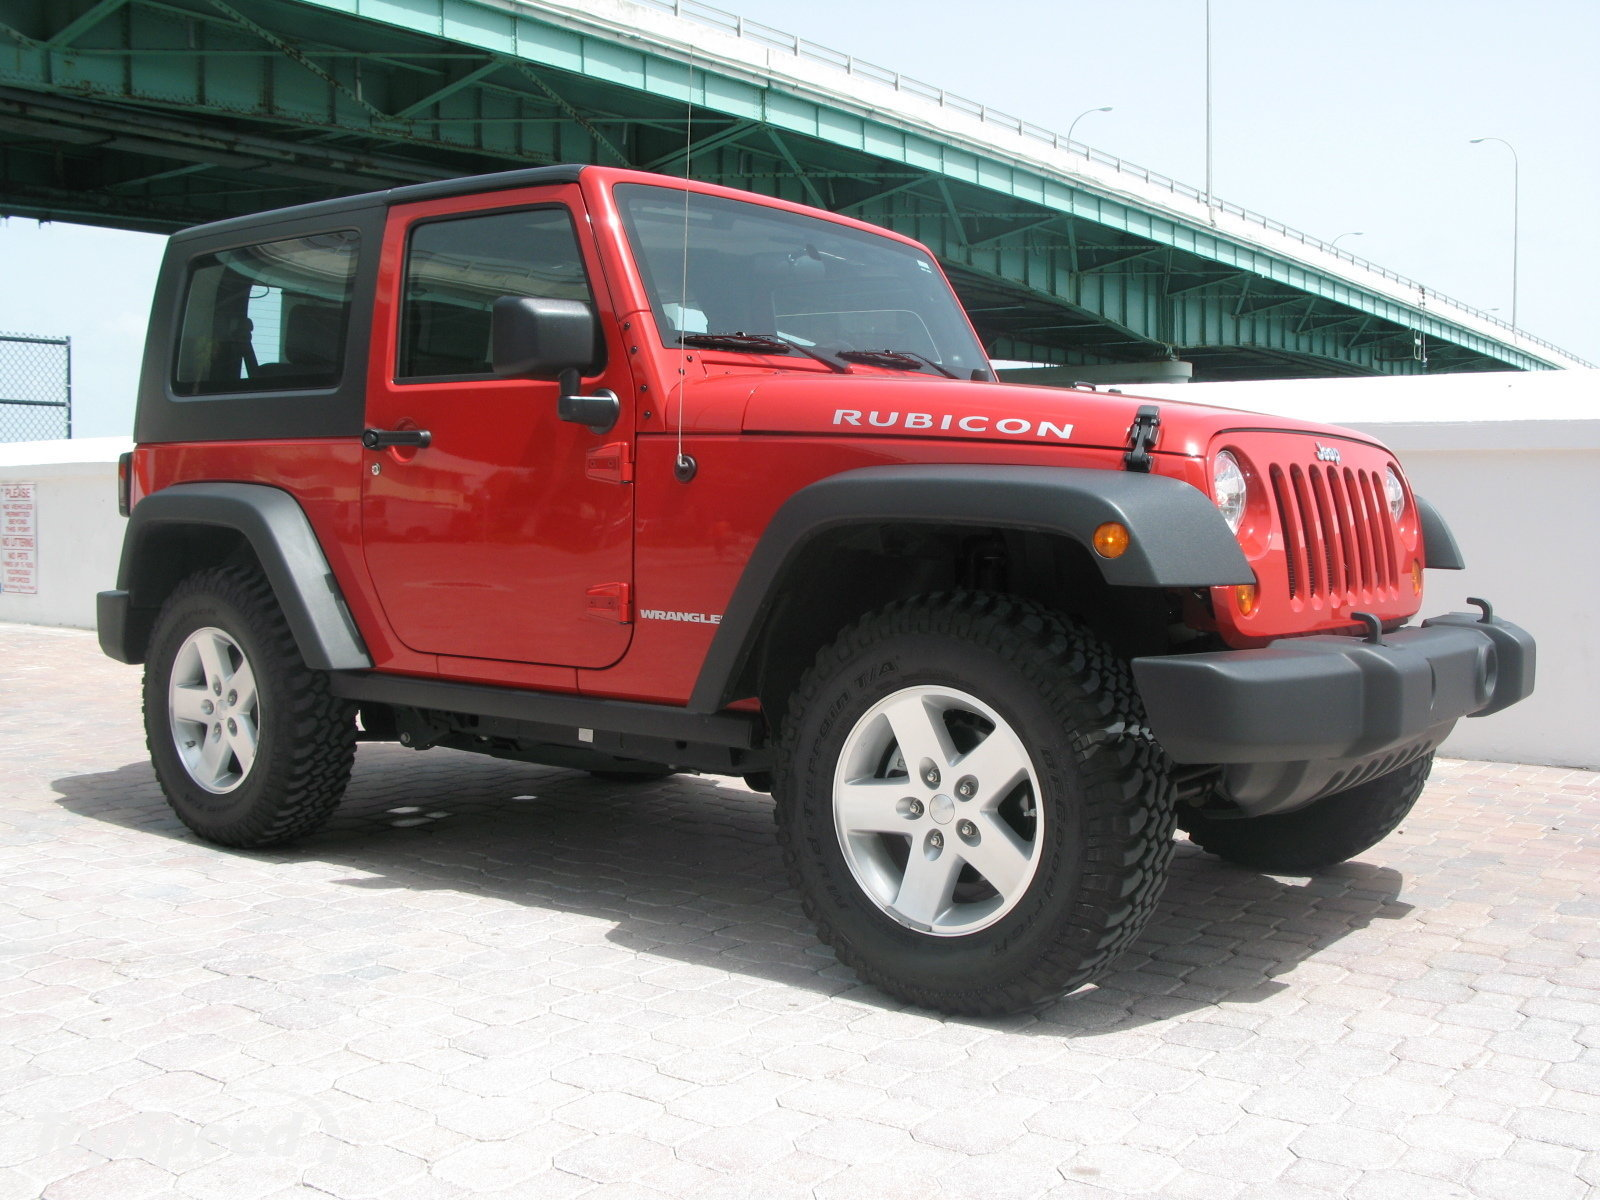 Jeep Wrangler Rubicon Convertible 2012